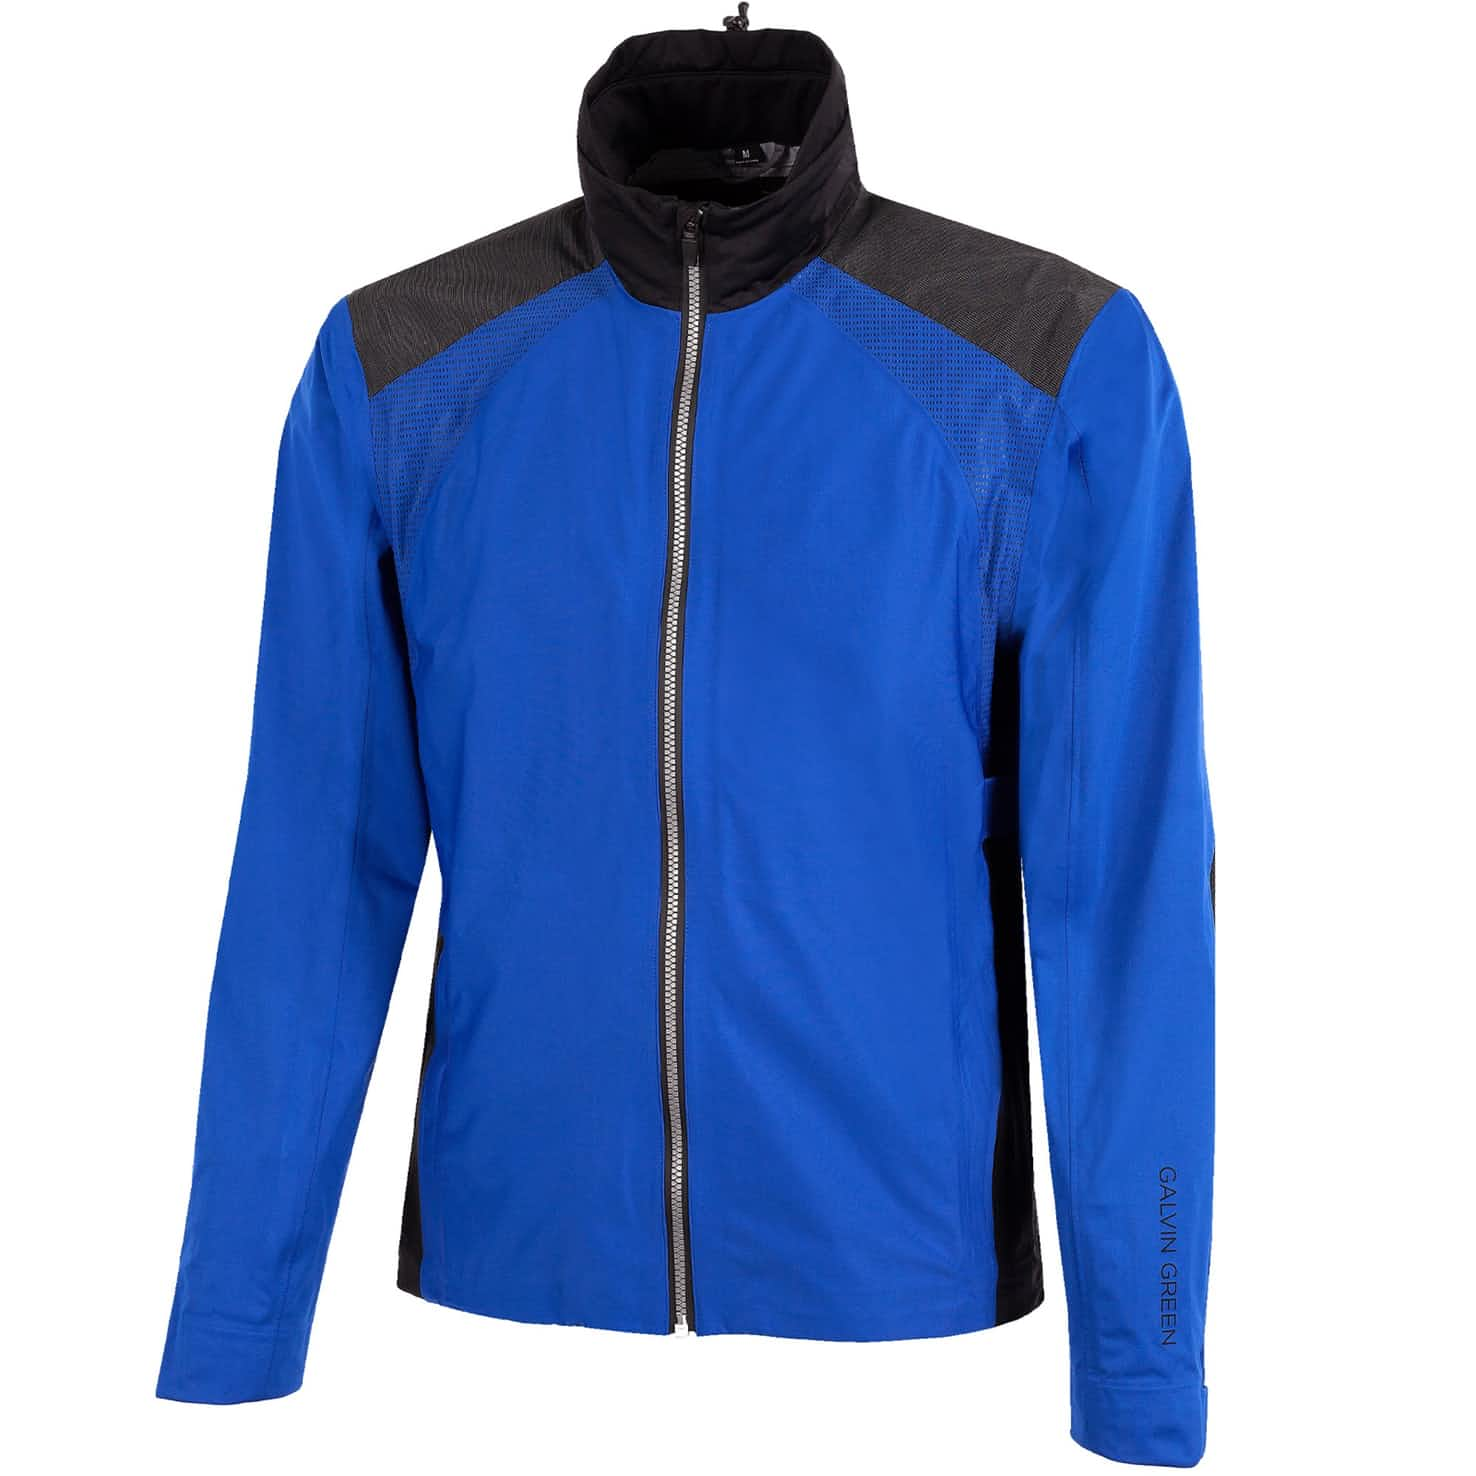 Archie Gore-Tex Stretch Jacket Surf Blue/Black - SS20